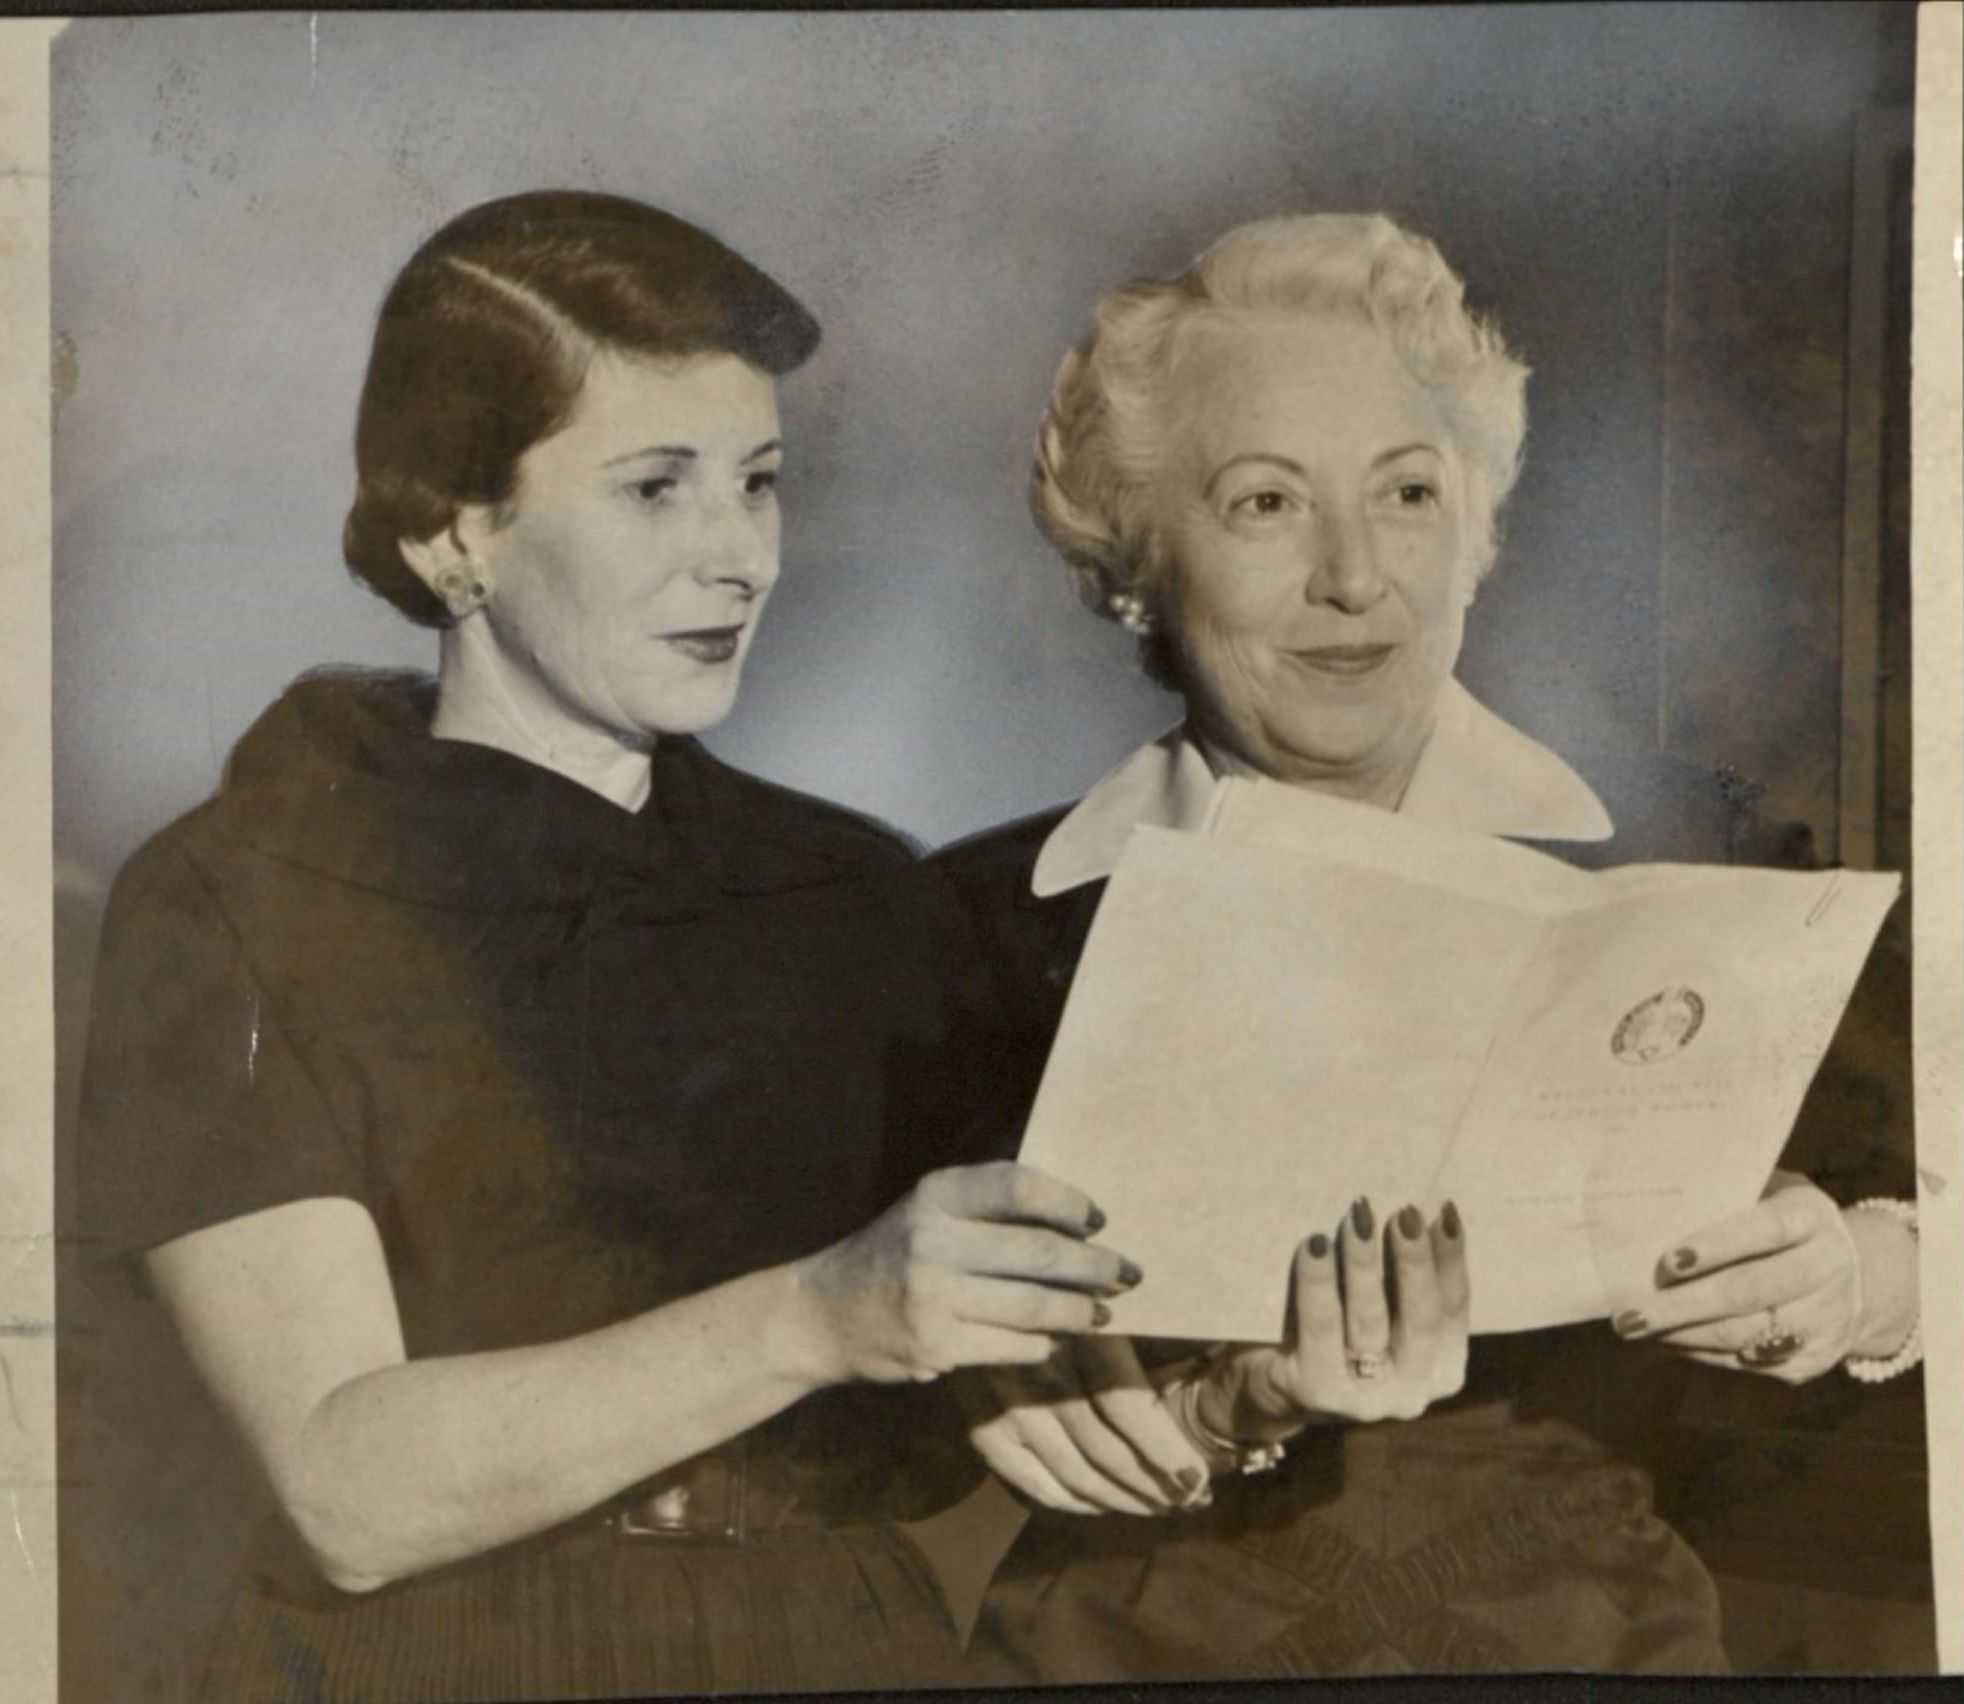 Phyllis Dennery and Gladys Cahn